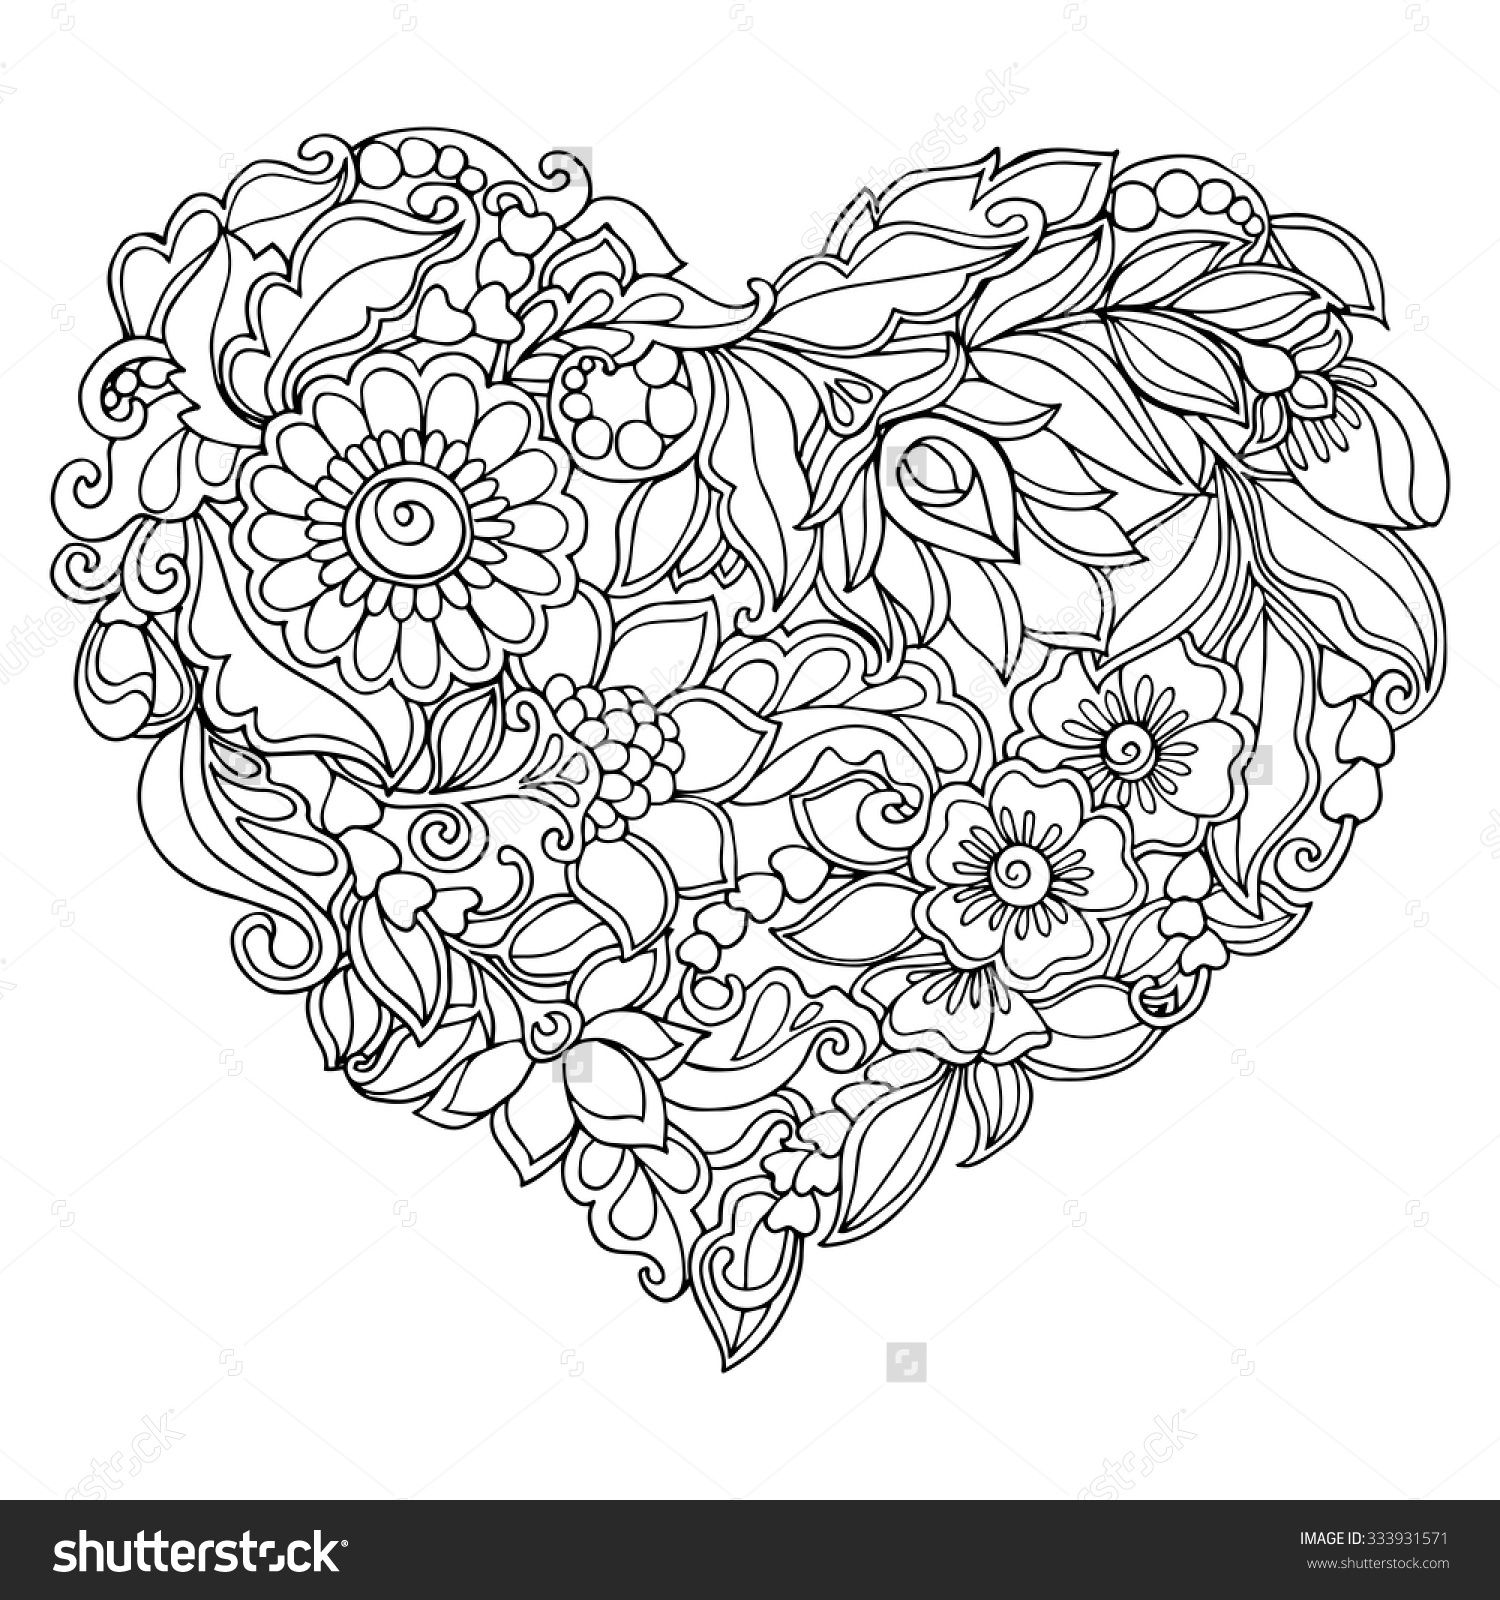 stock-vector-coloring-book-for-adult-and-older-children-coloring ...